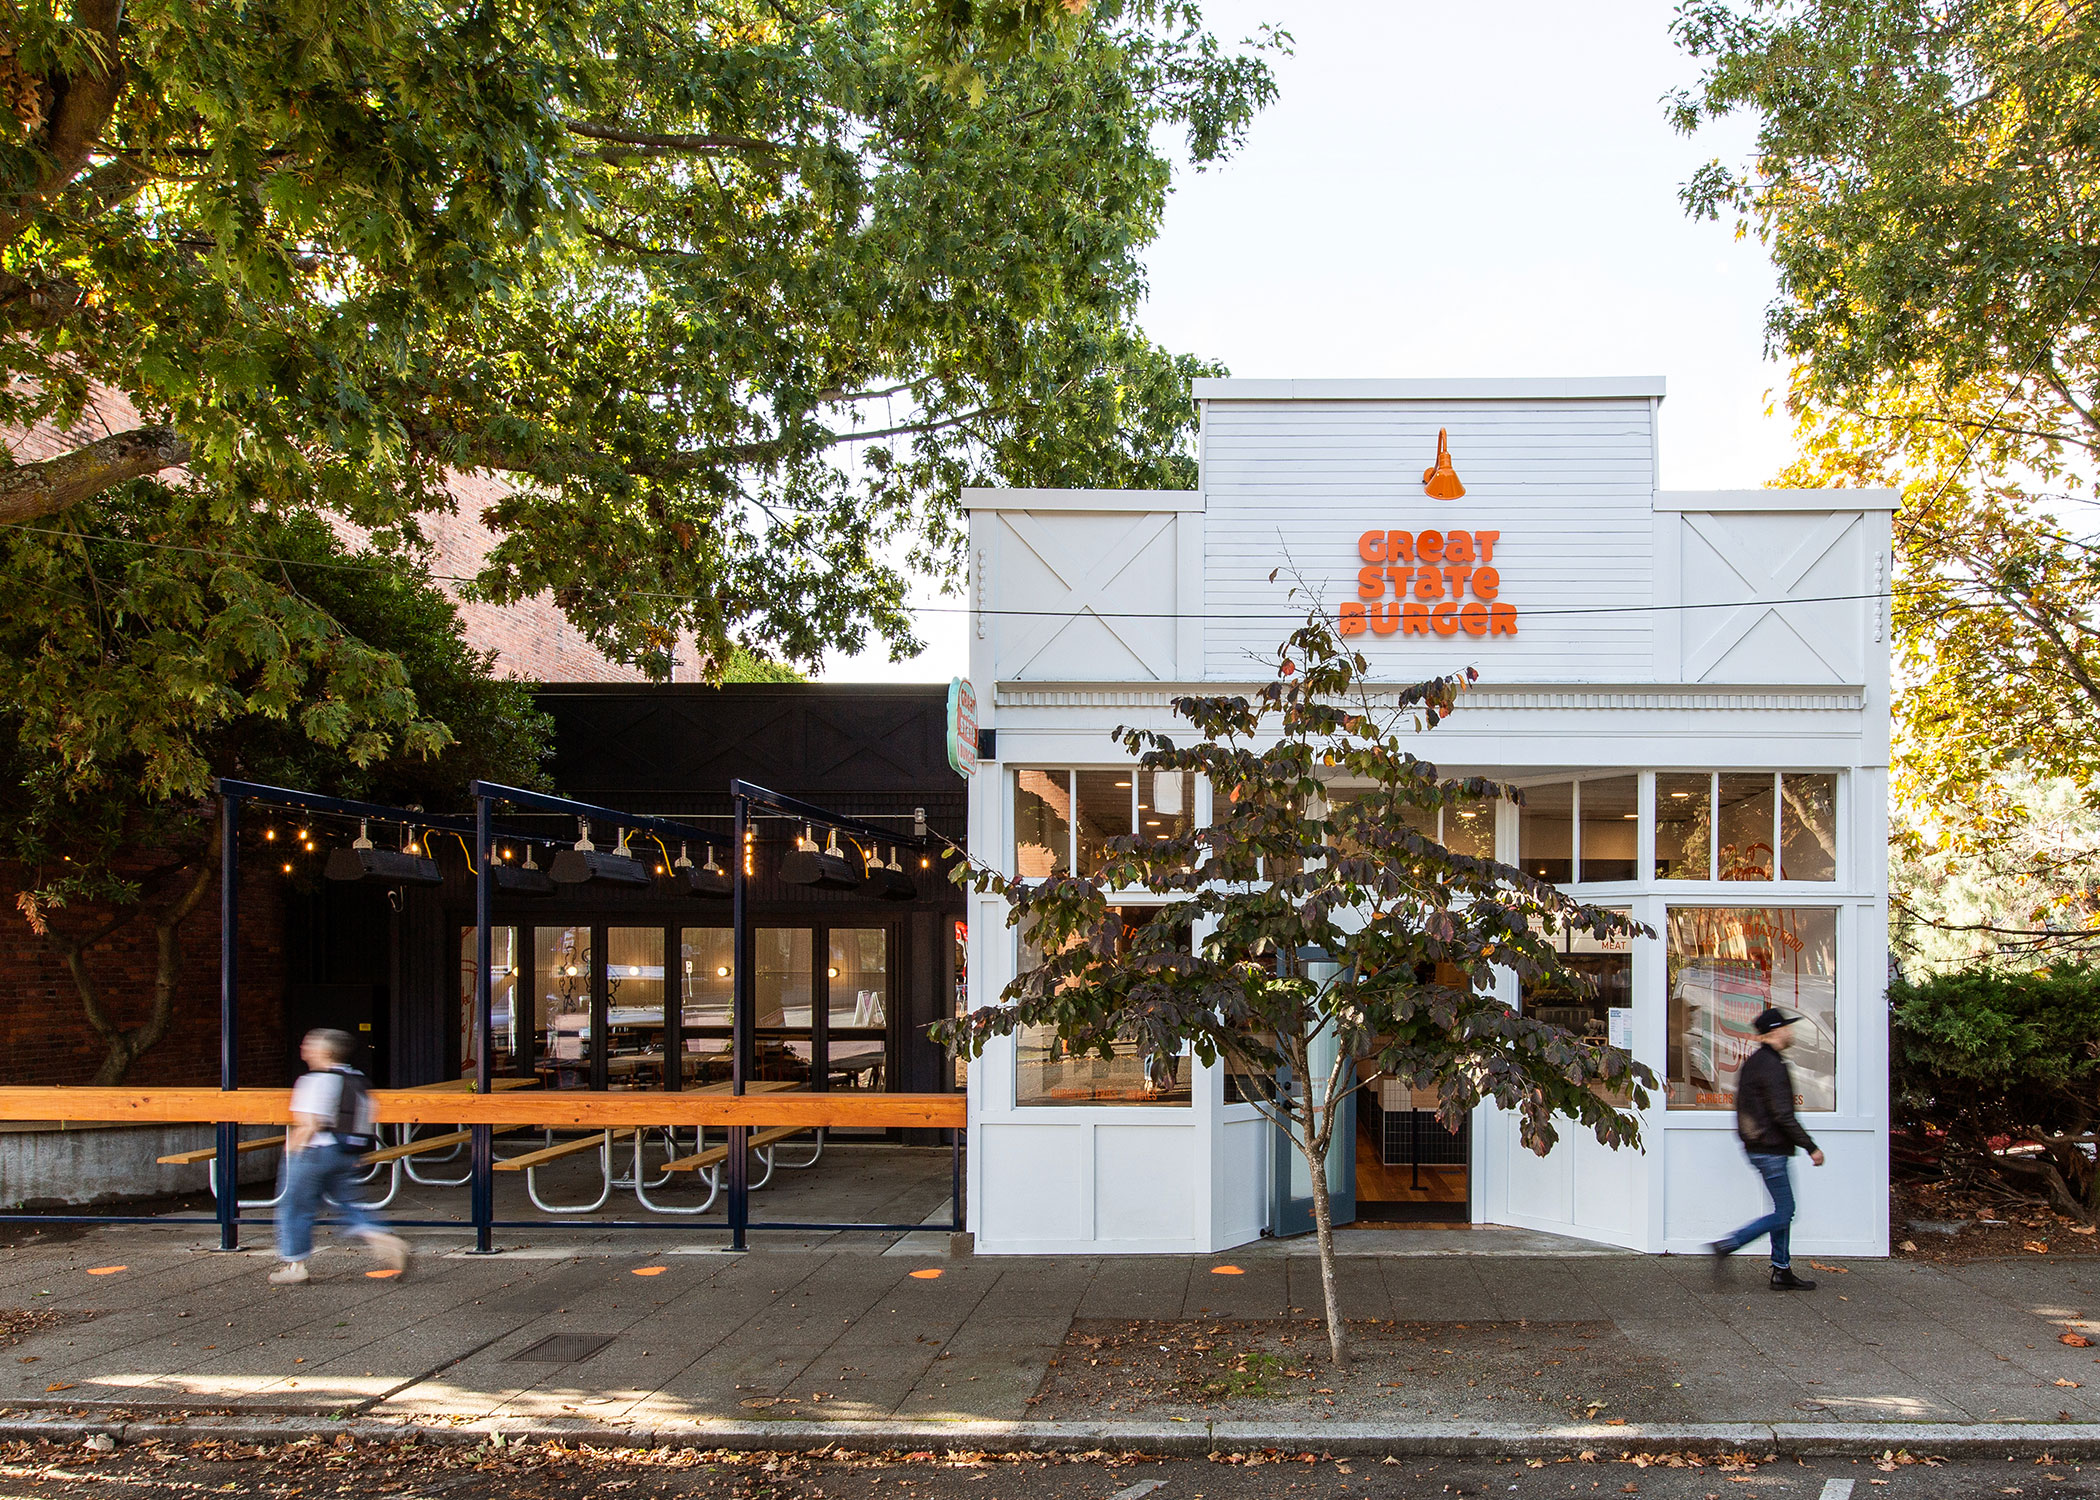 Exterior shot of the modern, colorful burger restaurant, Great State Burger. Orange signage and outdoor seating